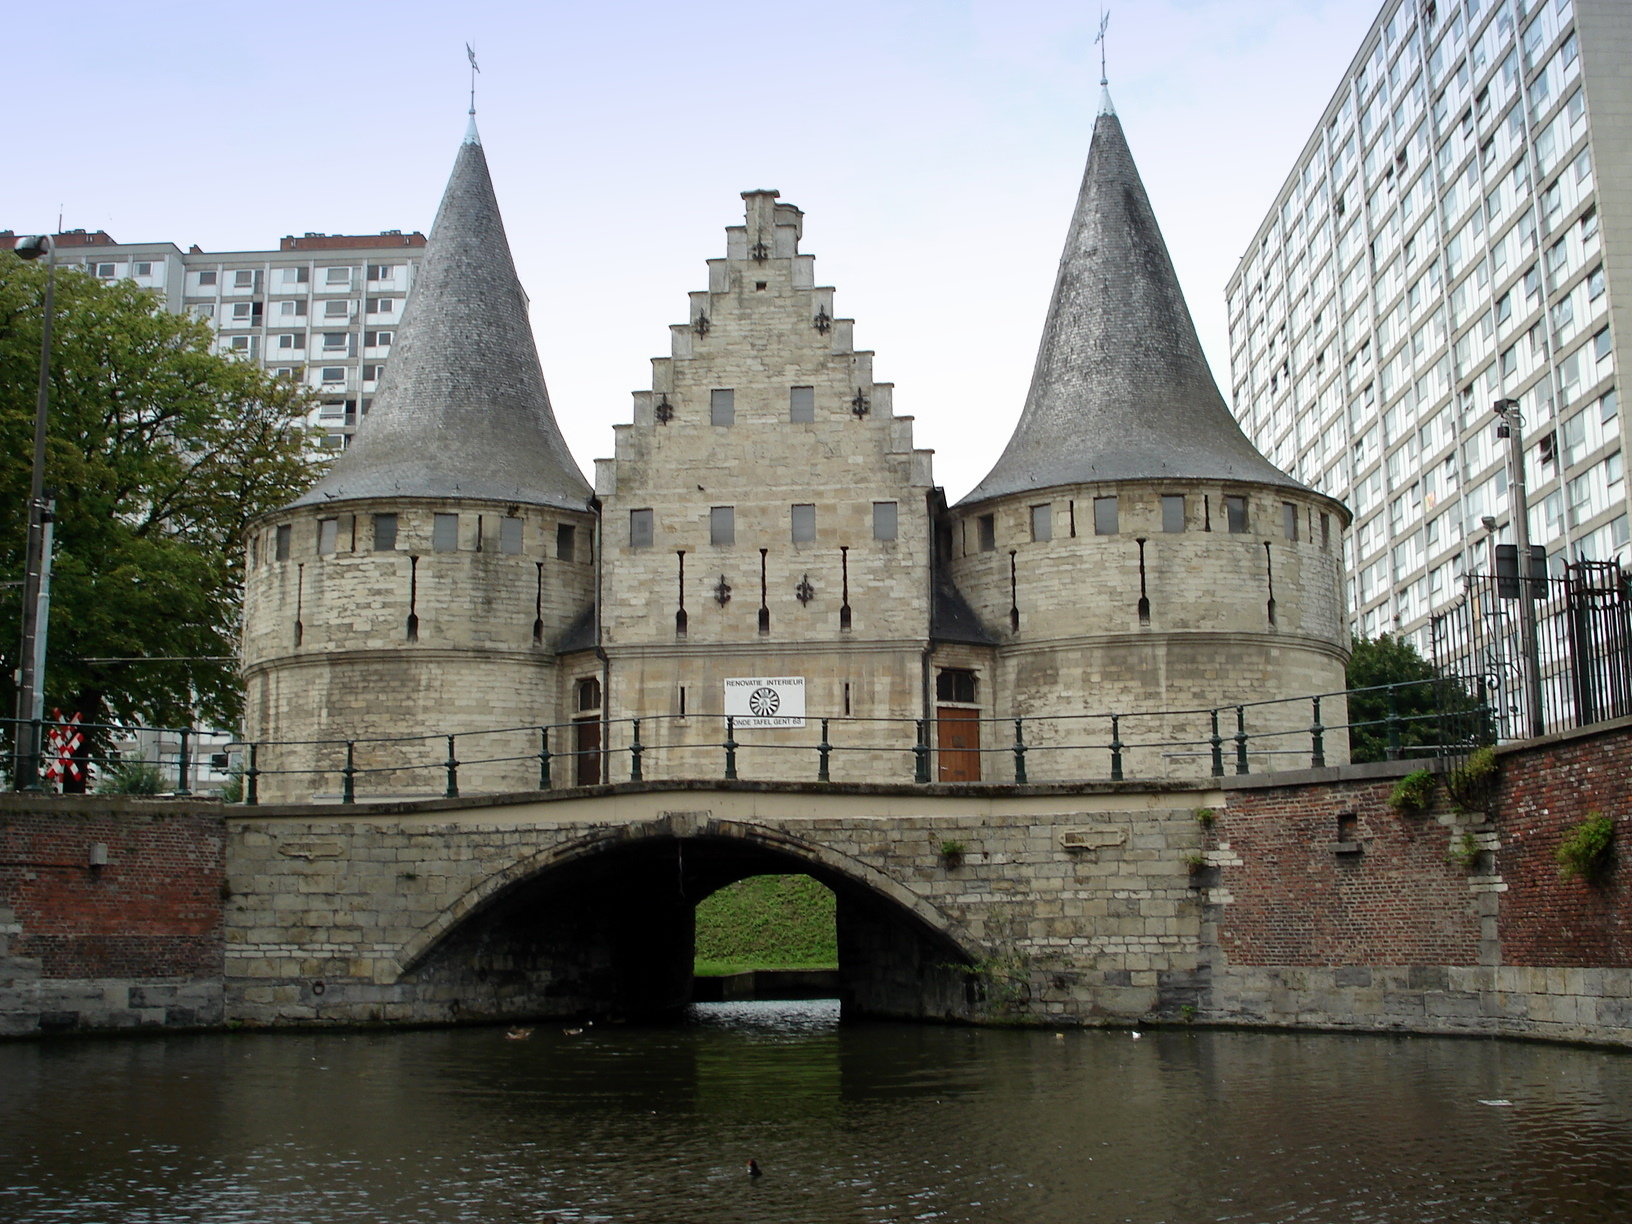 File:Gent Rabot.JPG - Wikimedia Commons